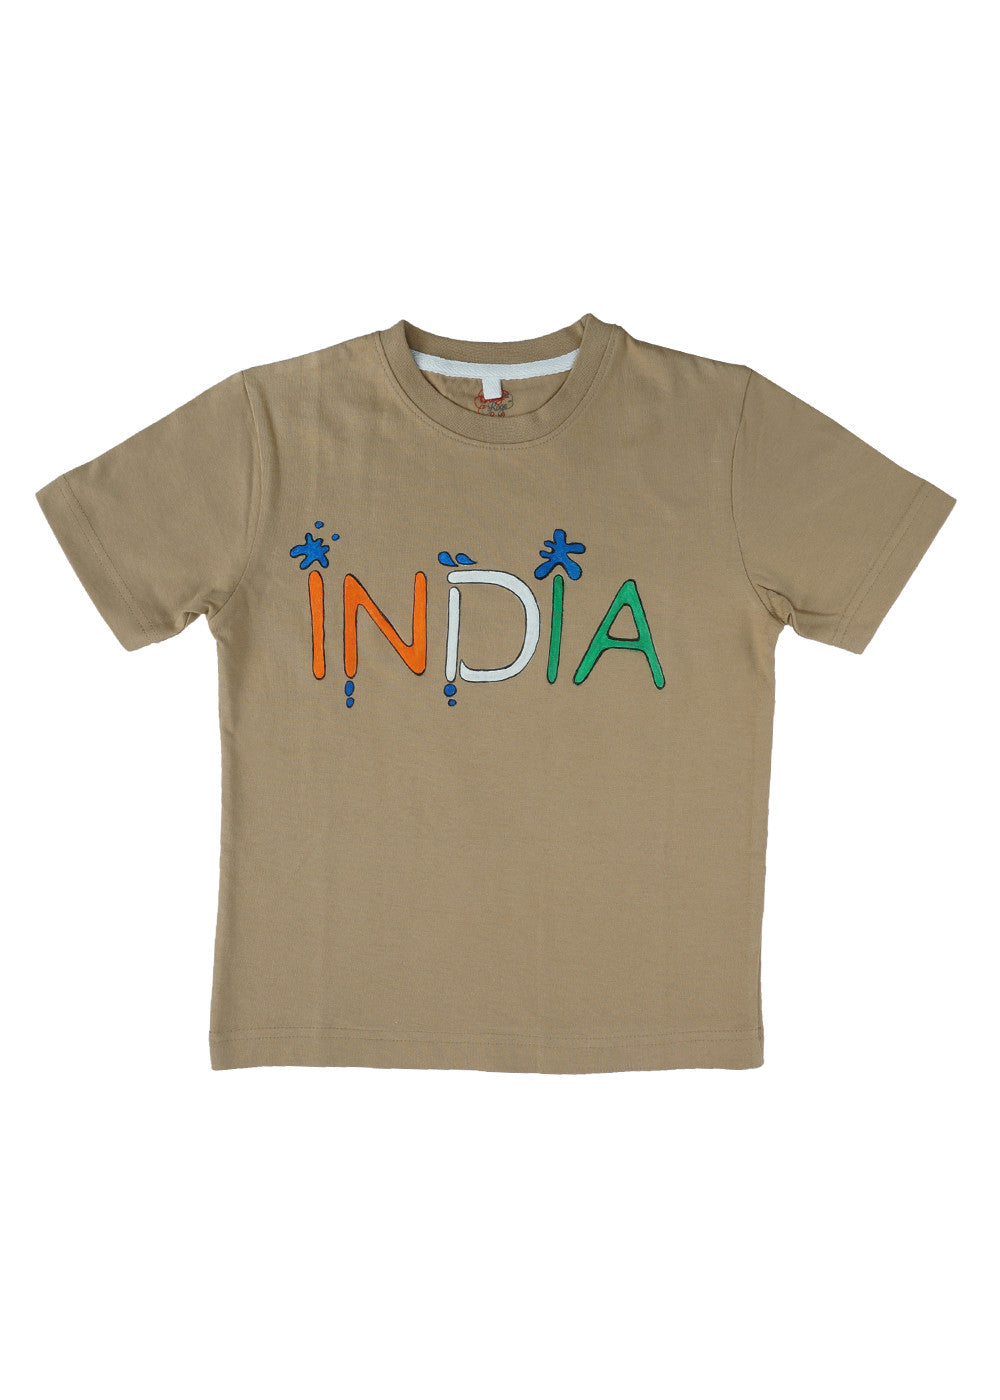 Hand-painted India T-shirt - Rang Rage  - 1